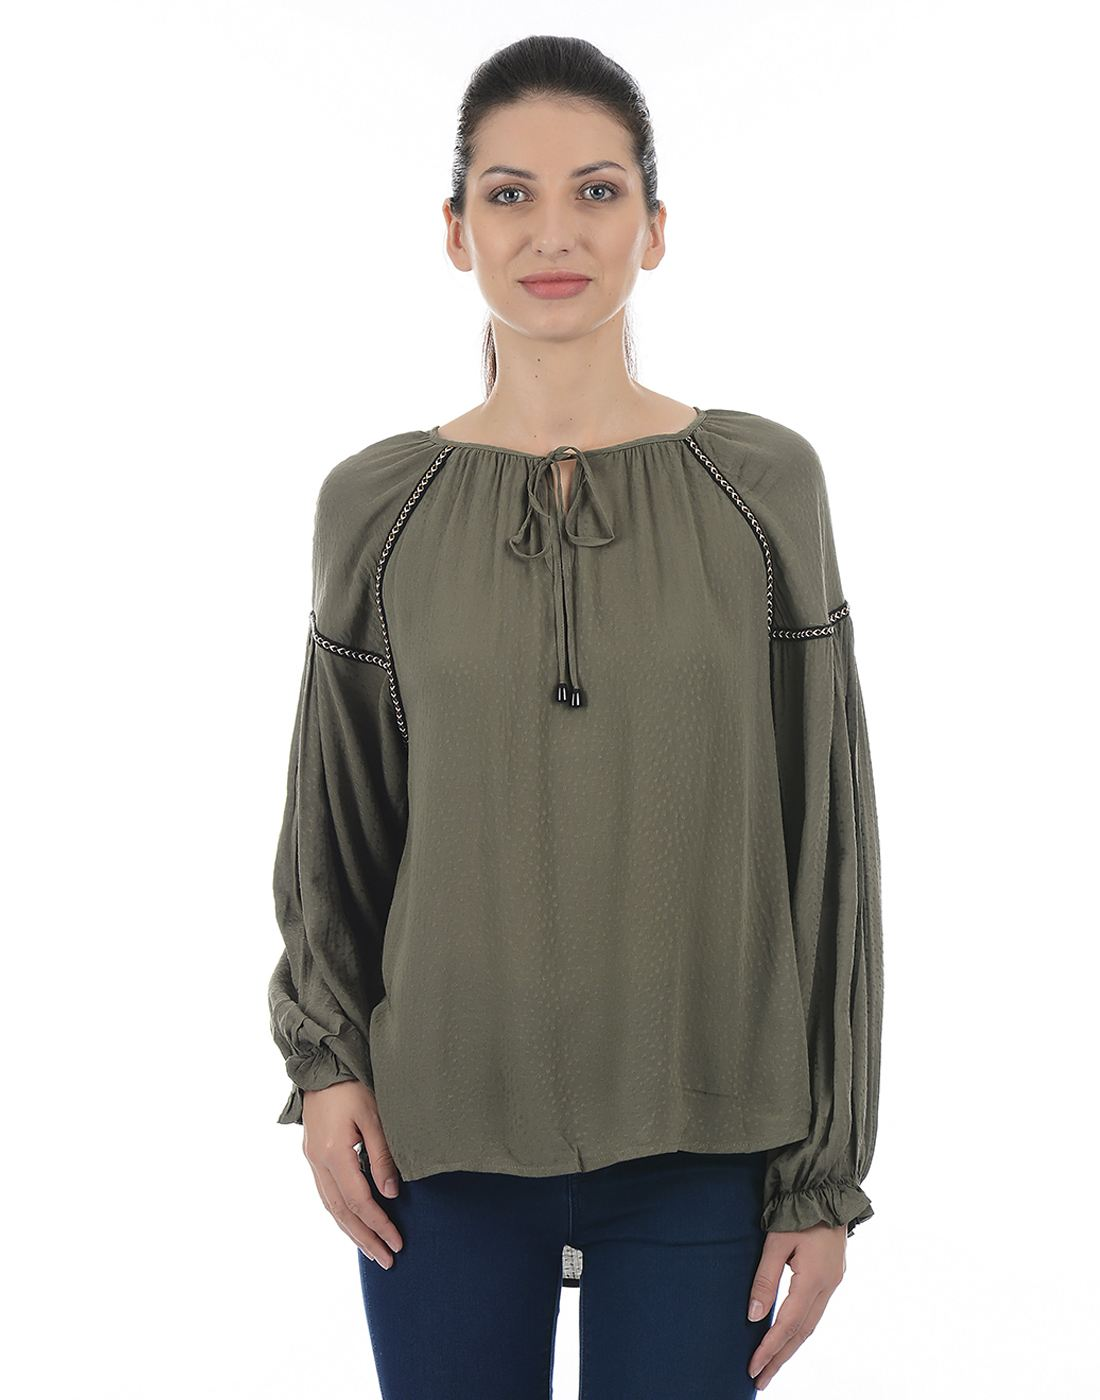 Only Women Casual Green Shirt